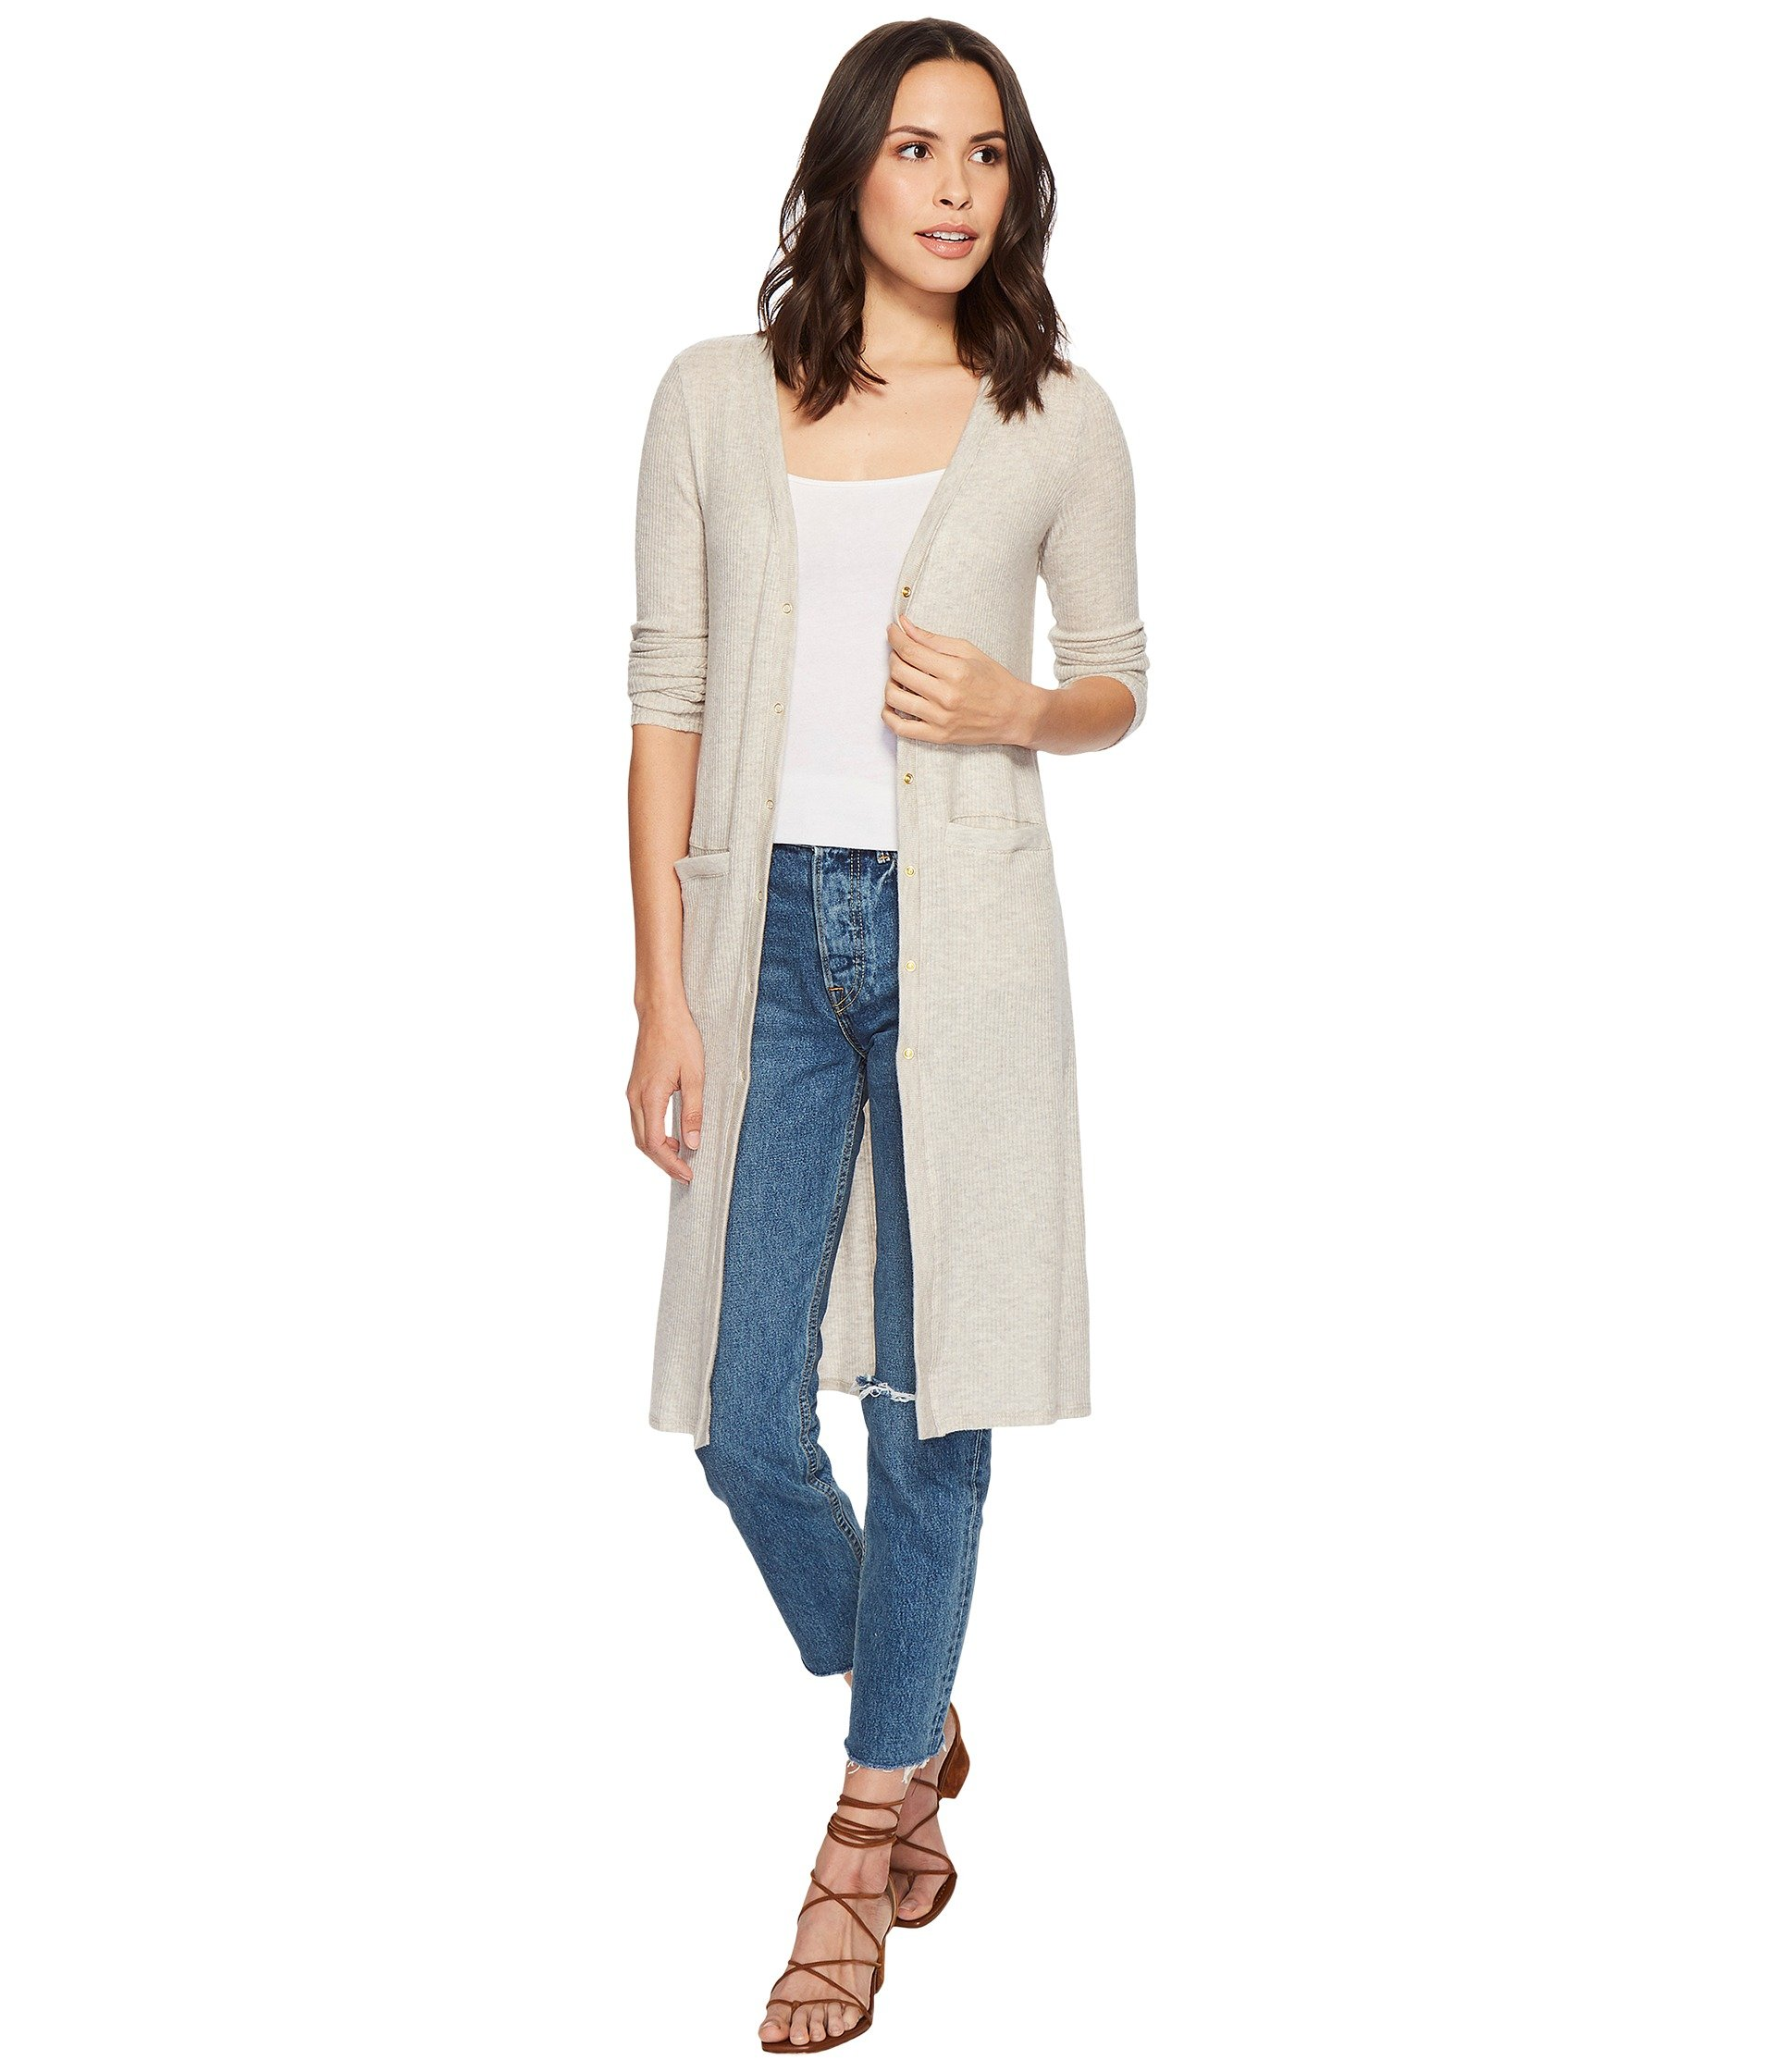 Three Dots Women's Brushed Sweater Long Cardigan, Marble, Extra Small